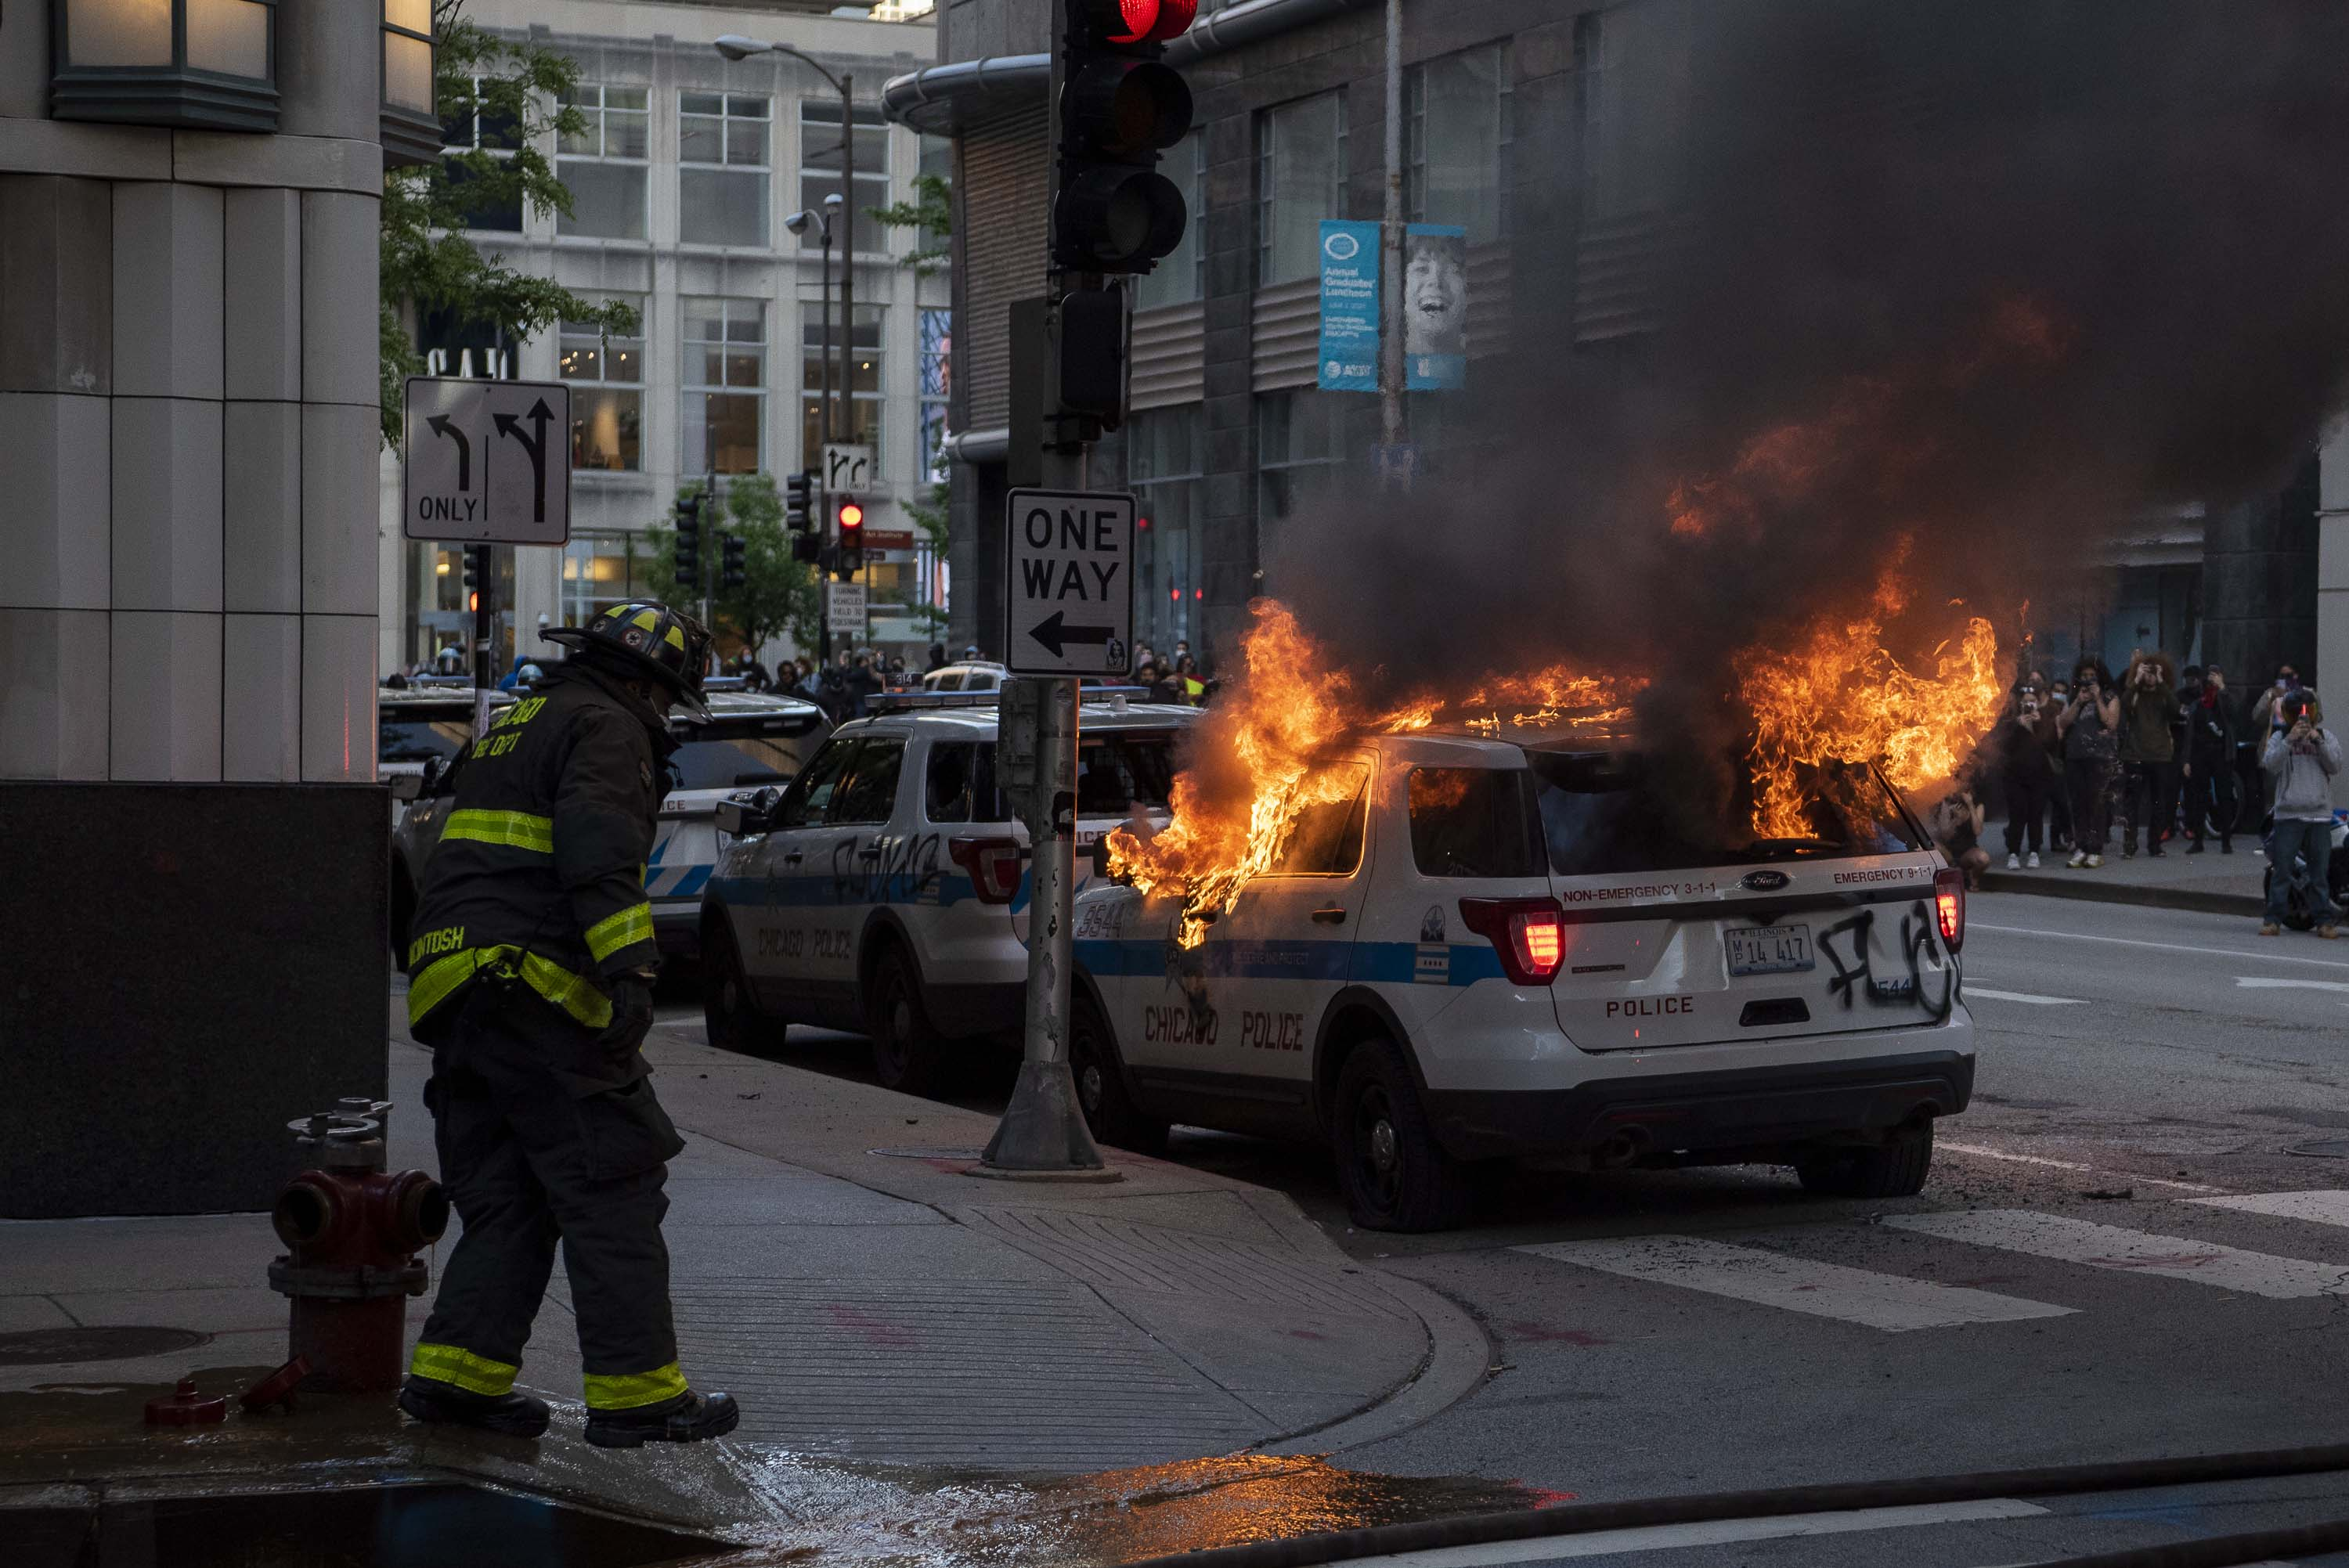 Chicago fire department respond to a Police vehicle set ablaze during a protest for George Floyd, Saturday, May 30, 2020.